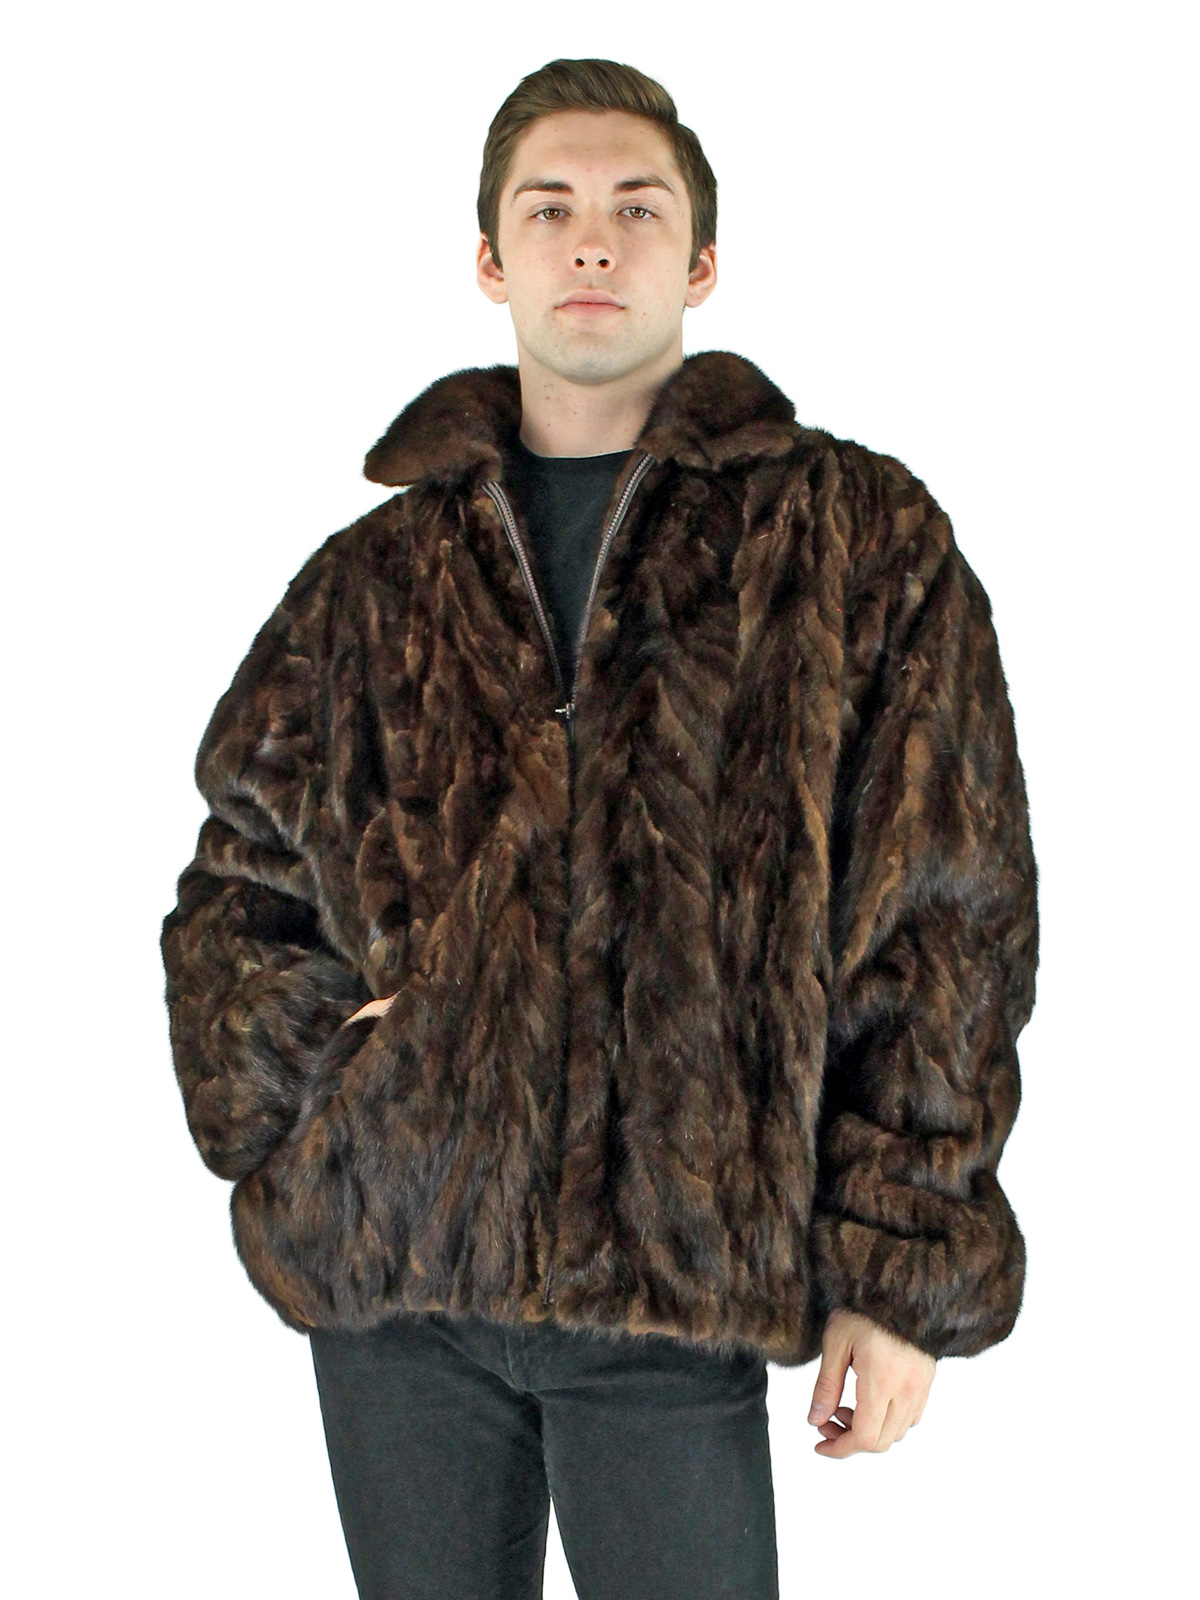 Man's Mahogany Mink Section Fur Jacket